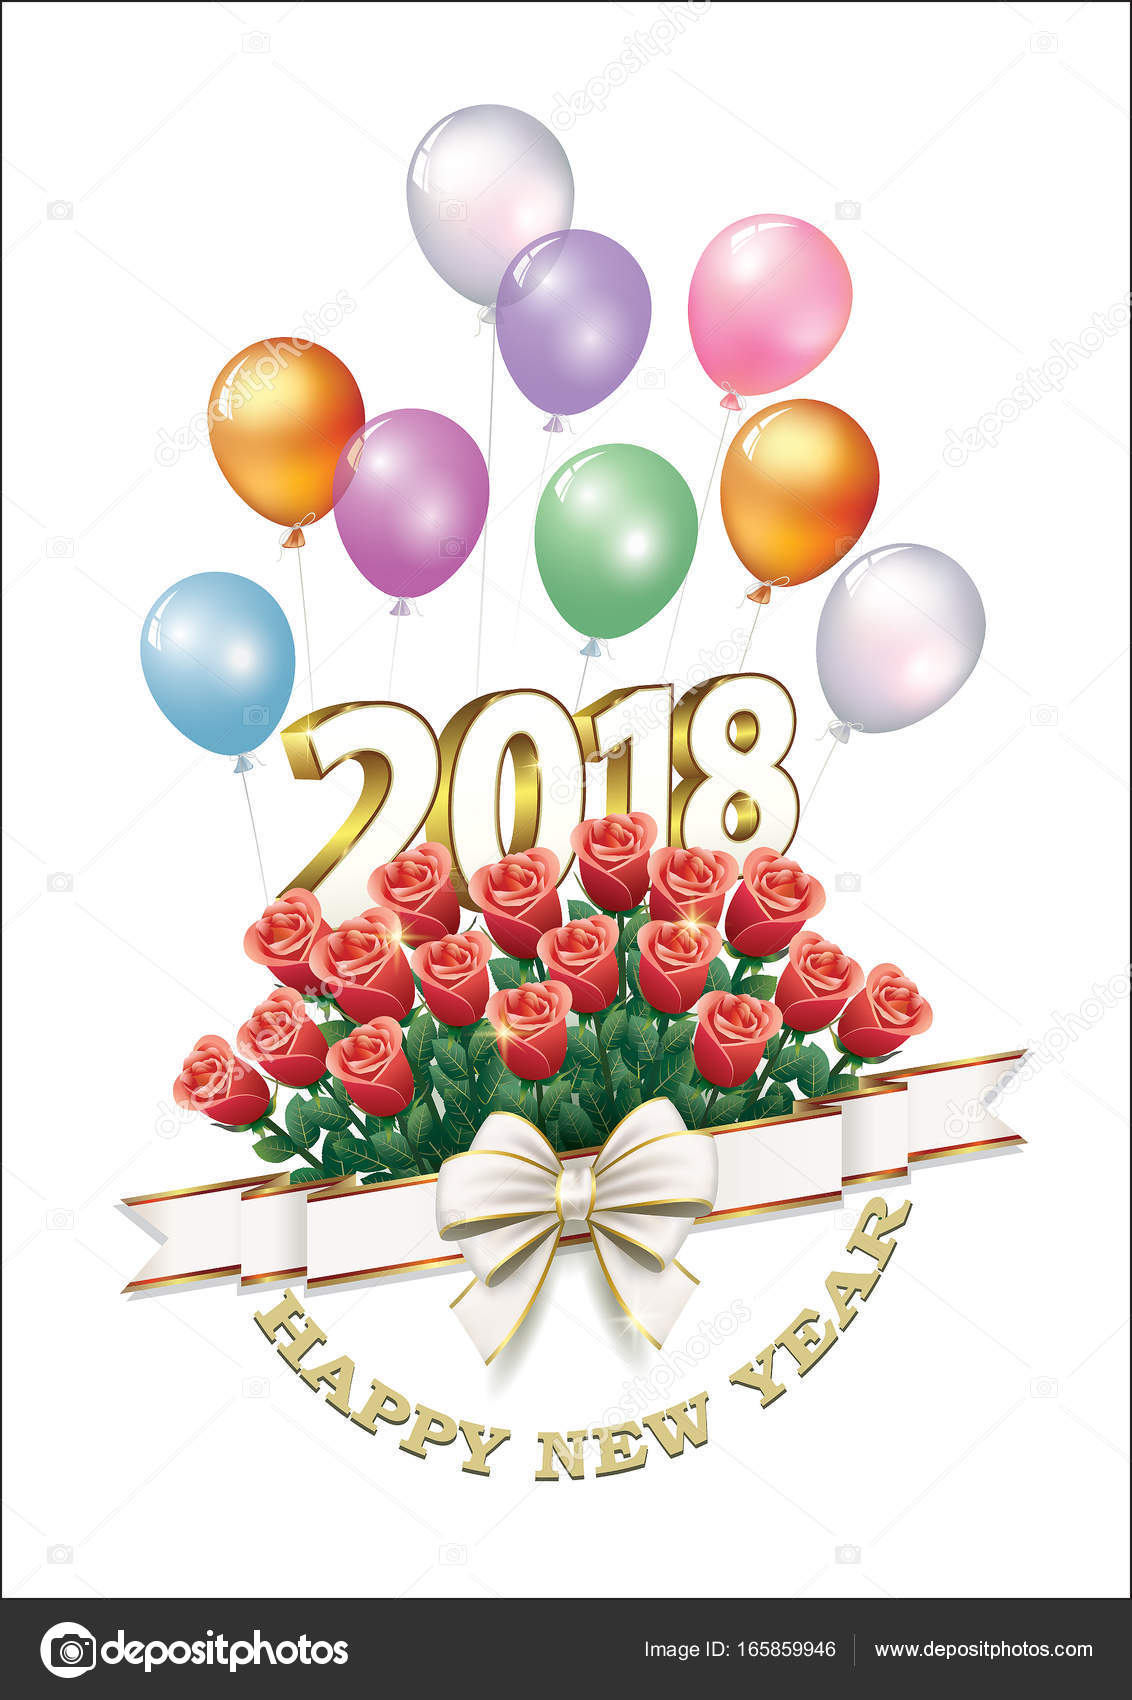 date 2018 happy new year with a bouquet of roses and a ribbon with a bow on a light background with balloons in 3d format vector illustration vector by